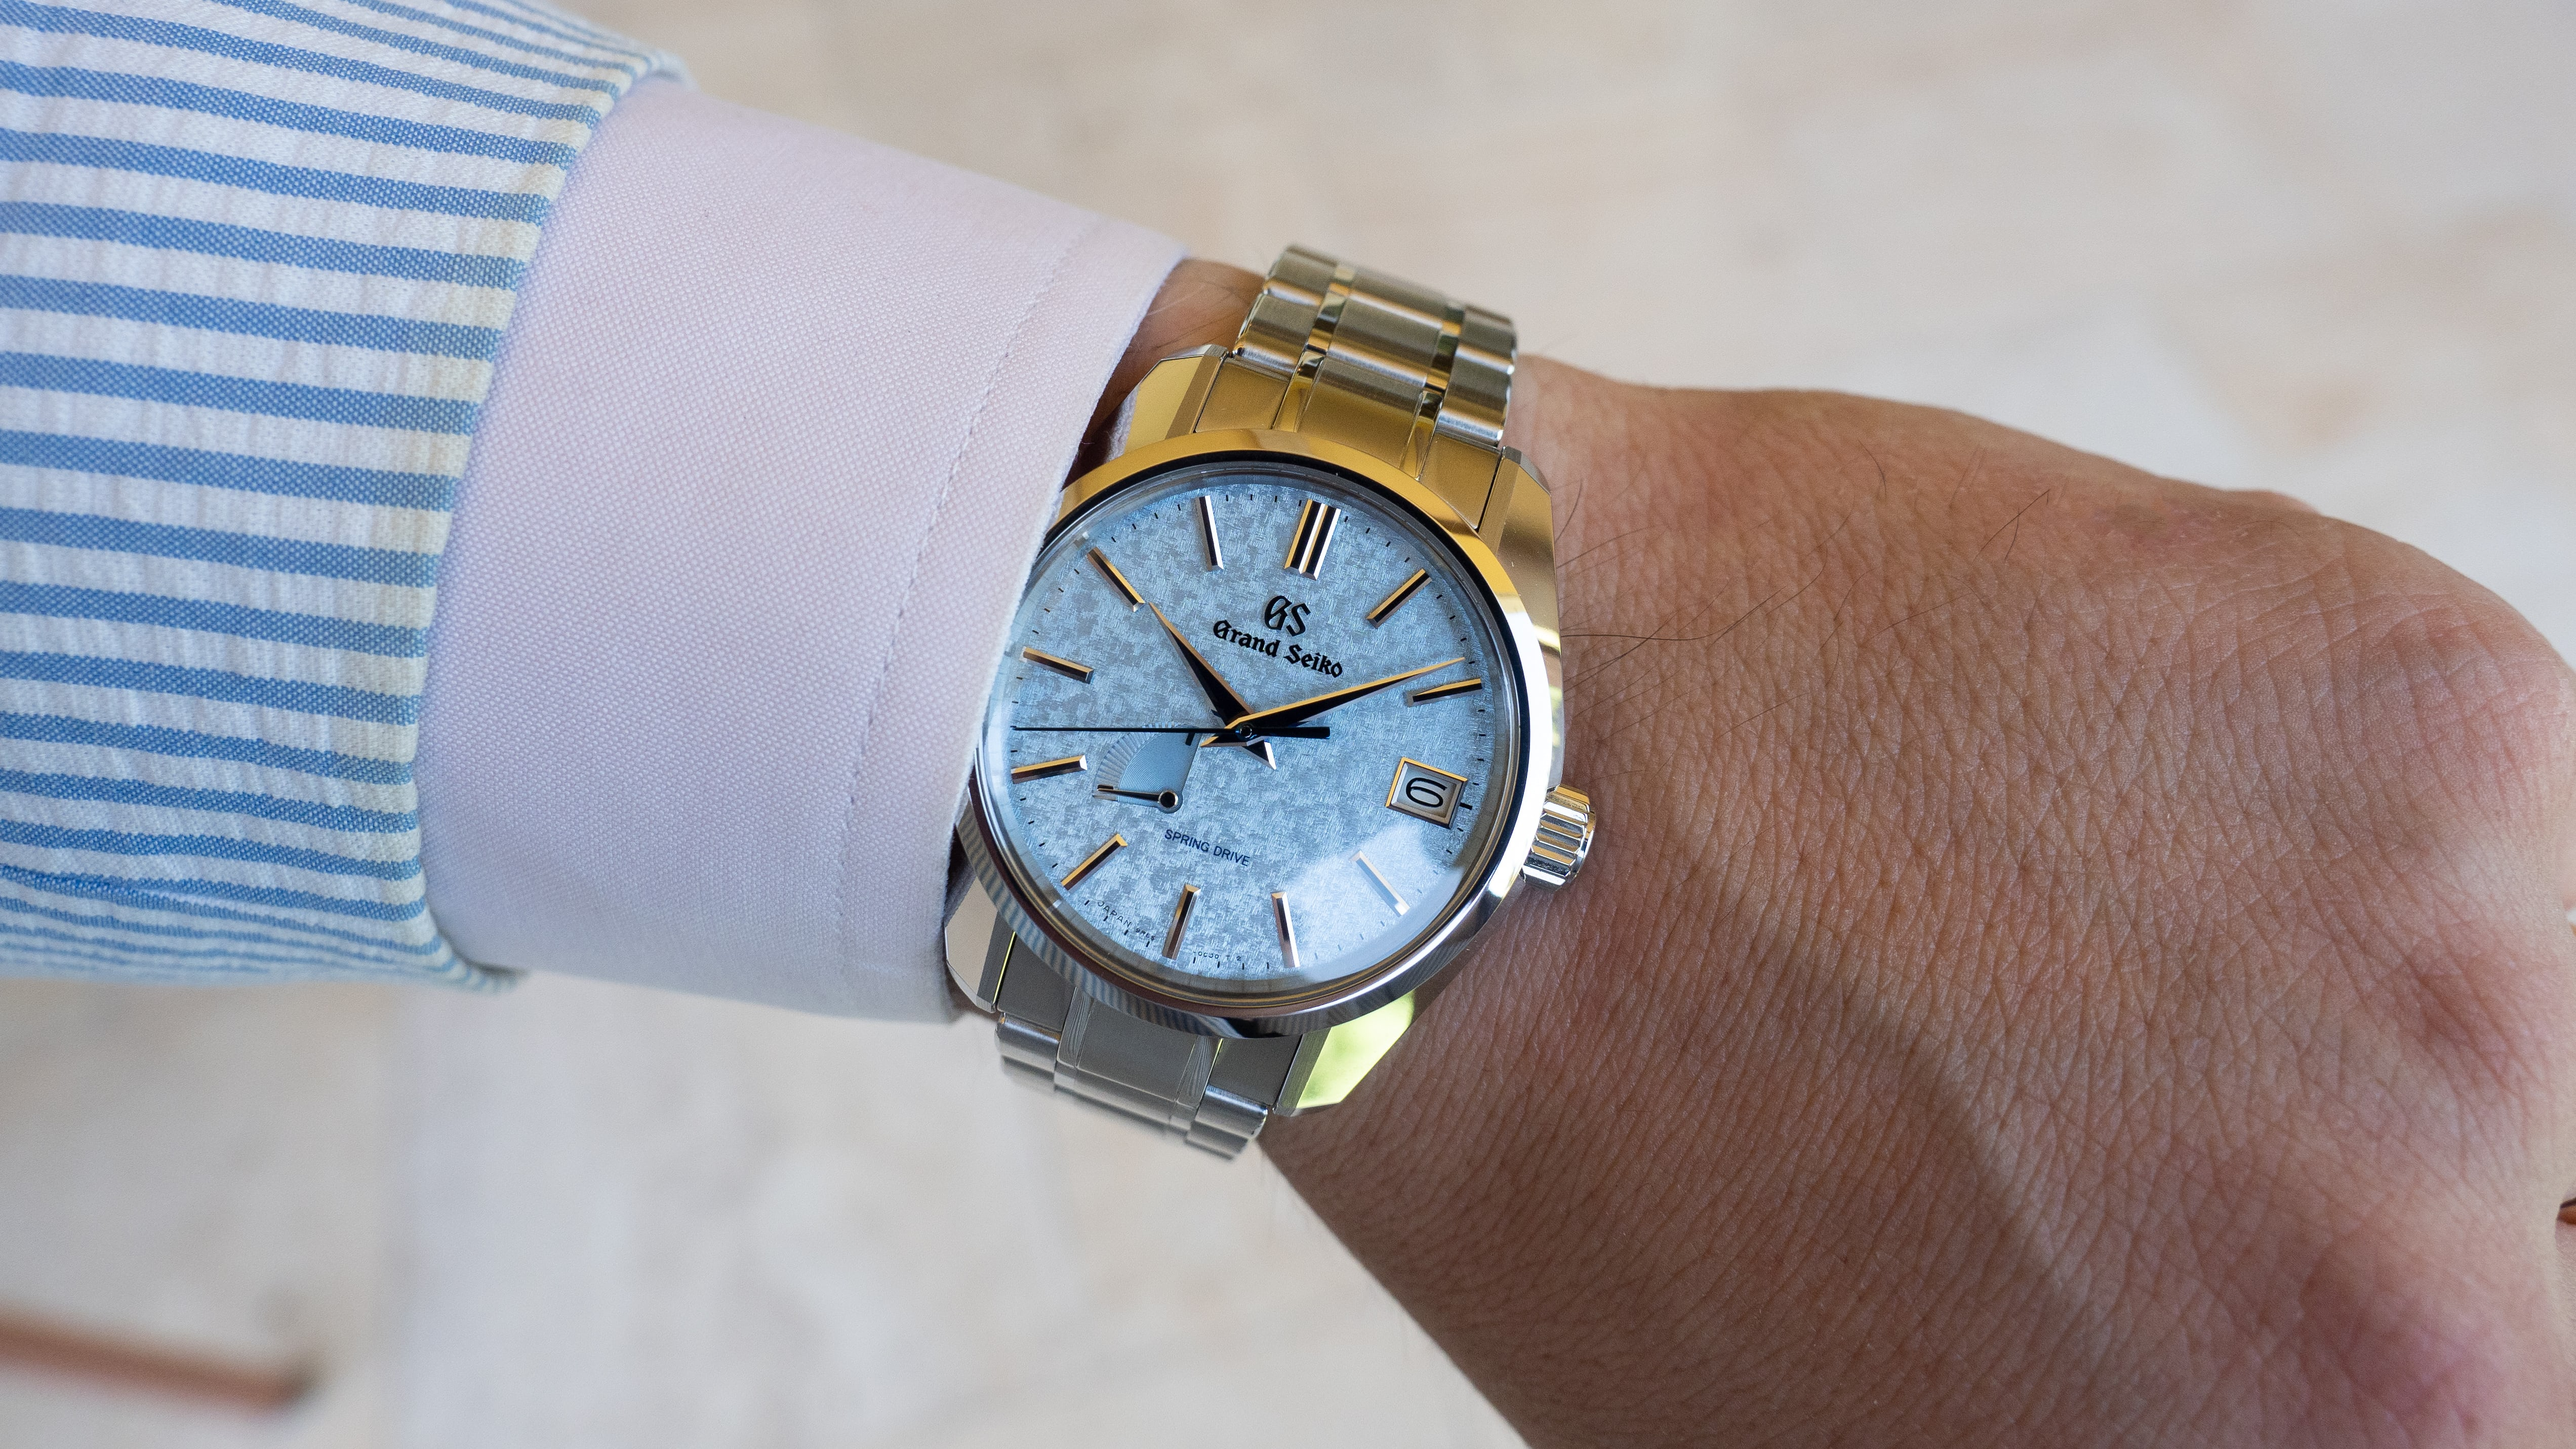 5d312f2f7c0 Introducing  The Grand Seiko Spring Drive U.S.-Only Limited Editions -  HODINKEE